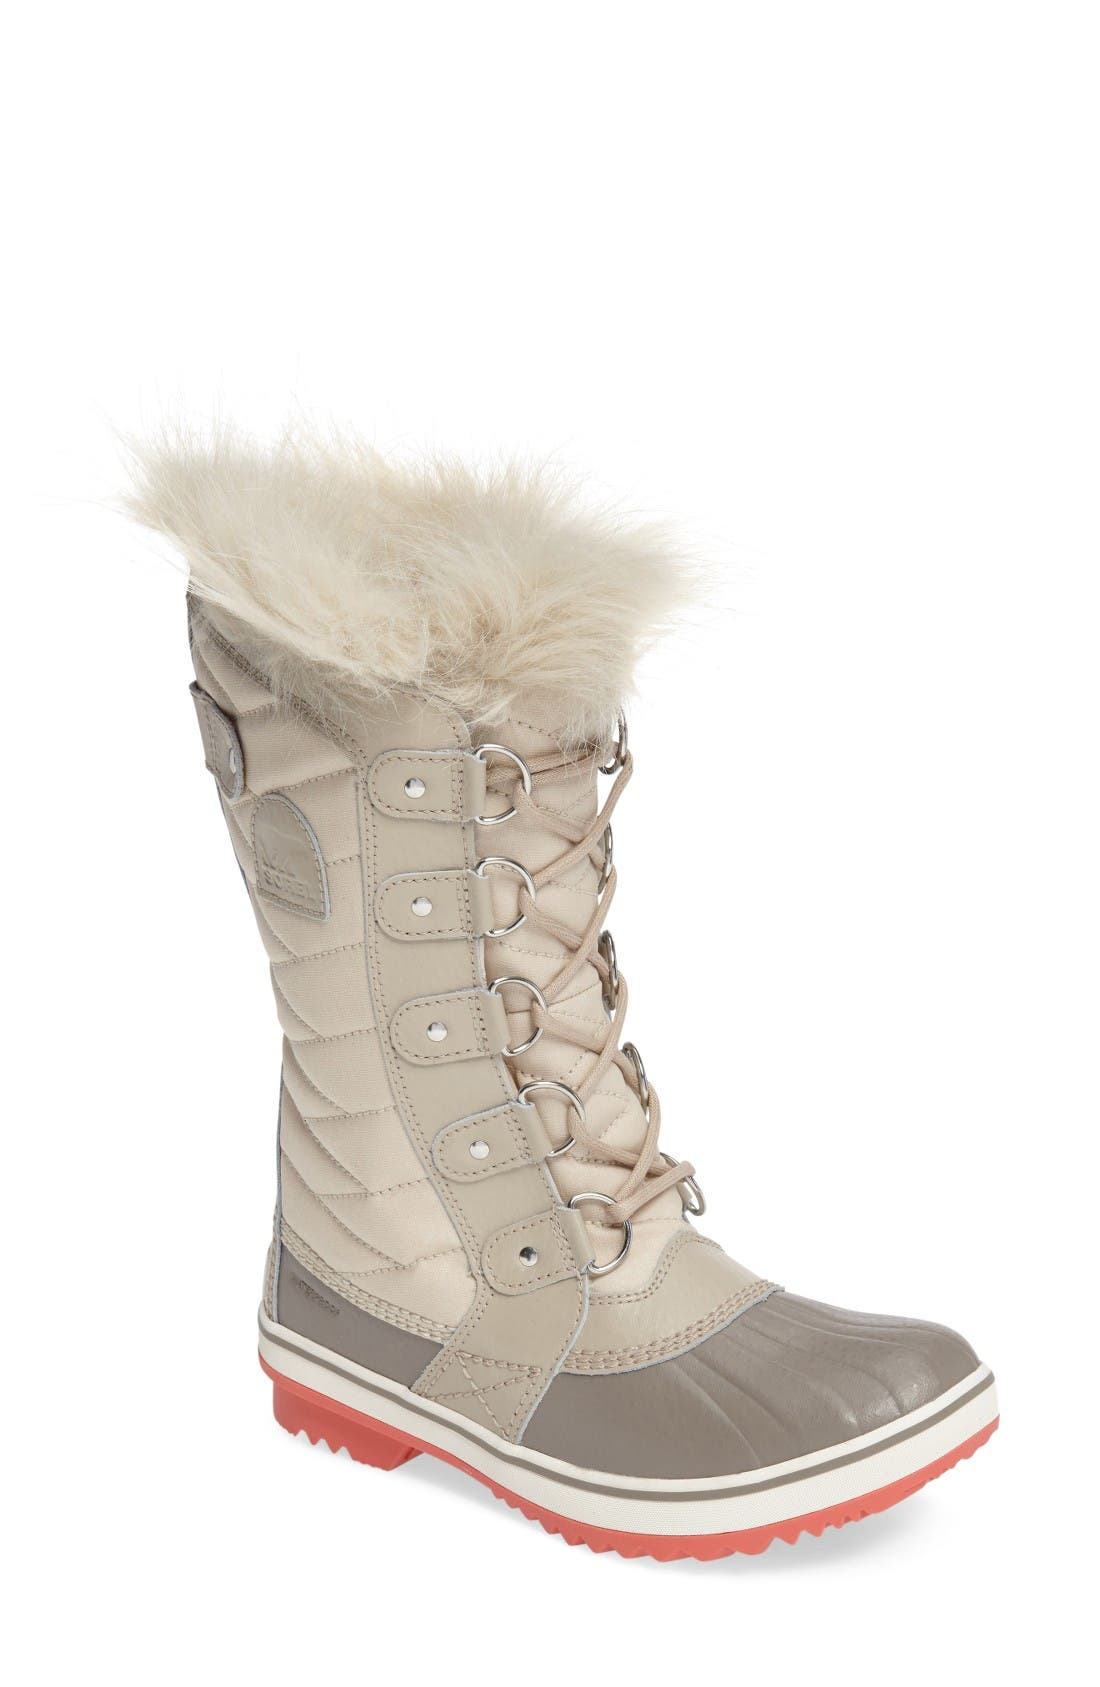 Main Image - SOREL 'Tofino II' Faux Fur Lined Waterproof Boot (Women)